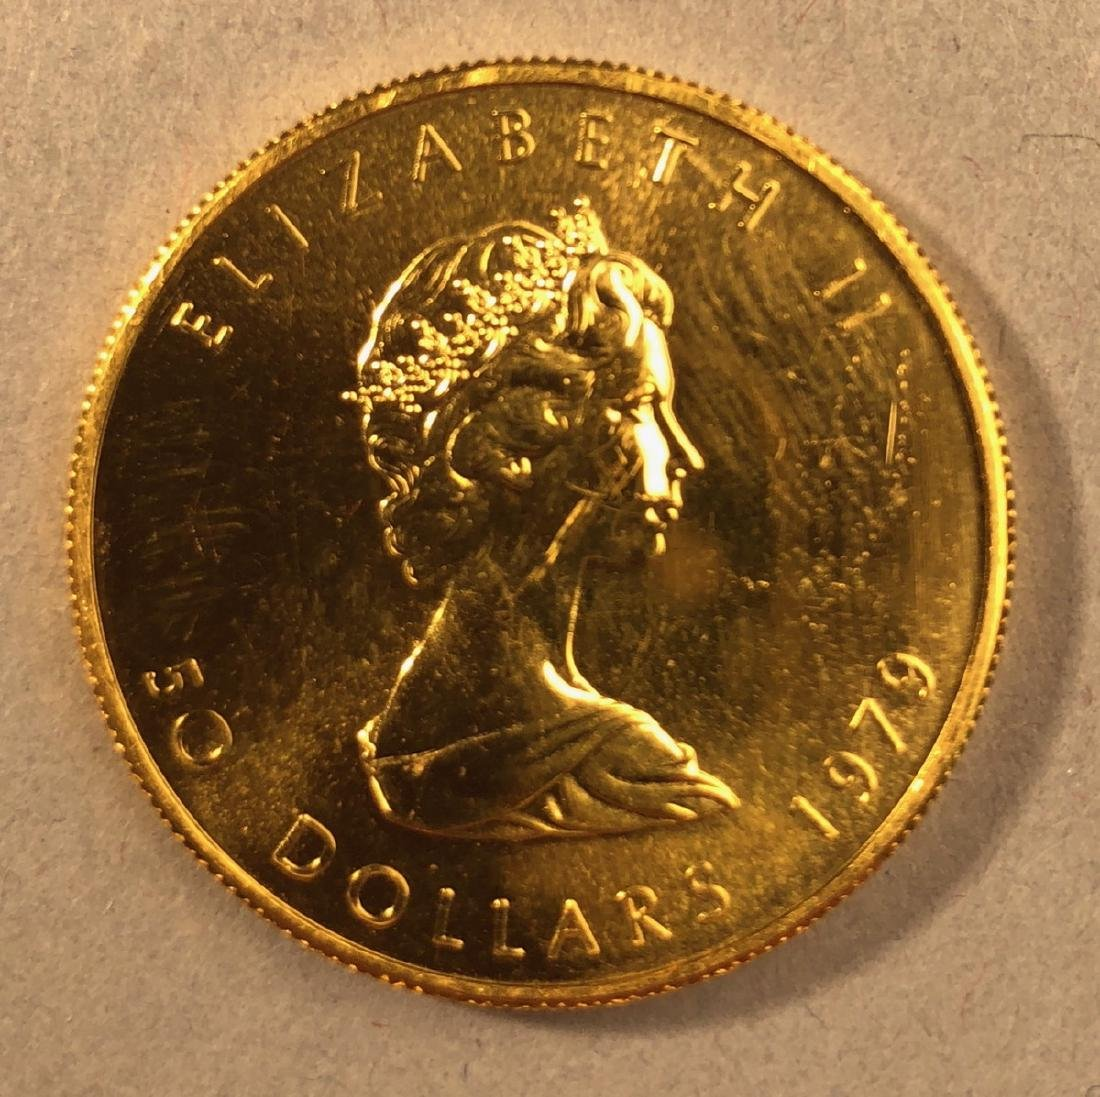 1979 Fifty Dollar Elizabeth II Canada Gold Coin.